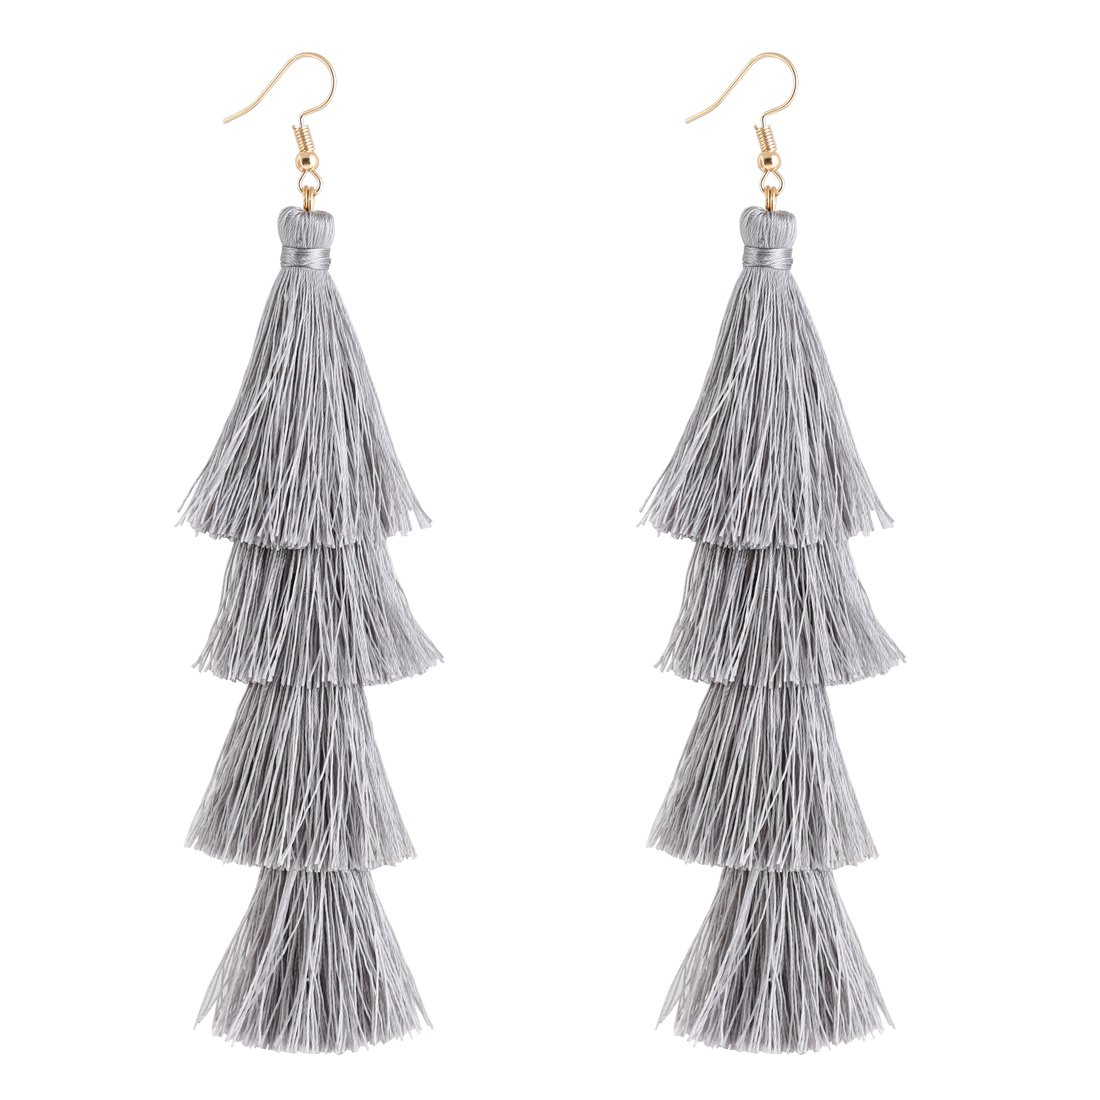 4c110ad05 These fun earrings feature four layers of tiered fringes in a voluminous,  hula-skirt inspired shape. 2. Approx. Measurements: 5 inches Weight:0.6  oz/17g